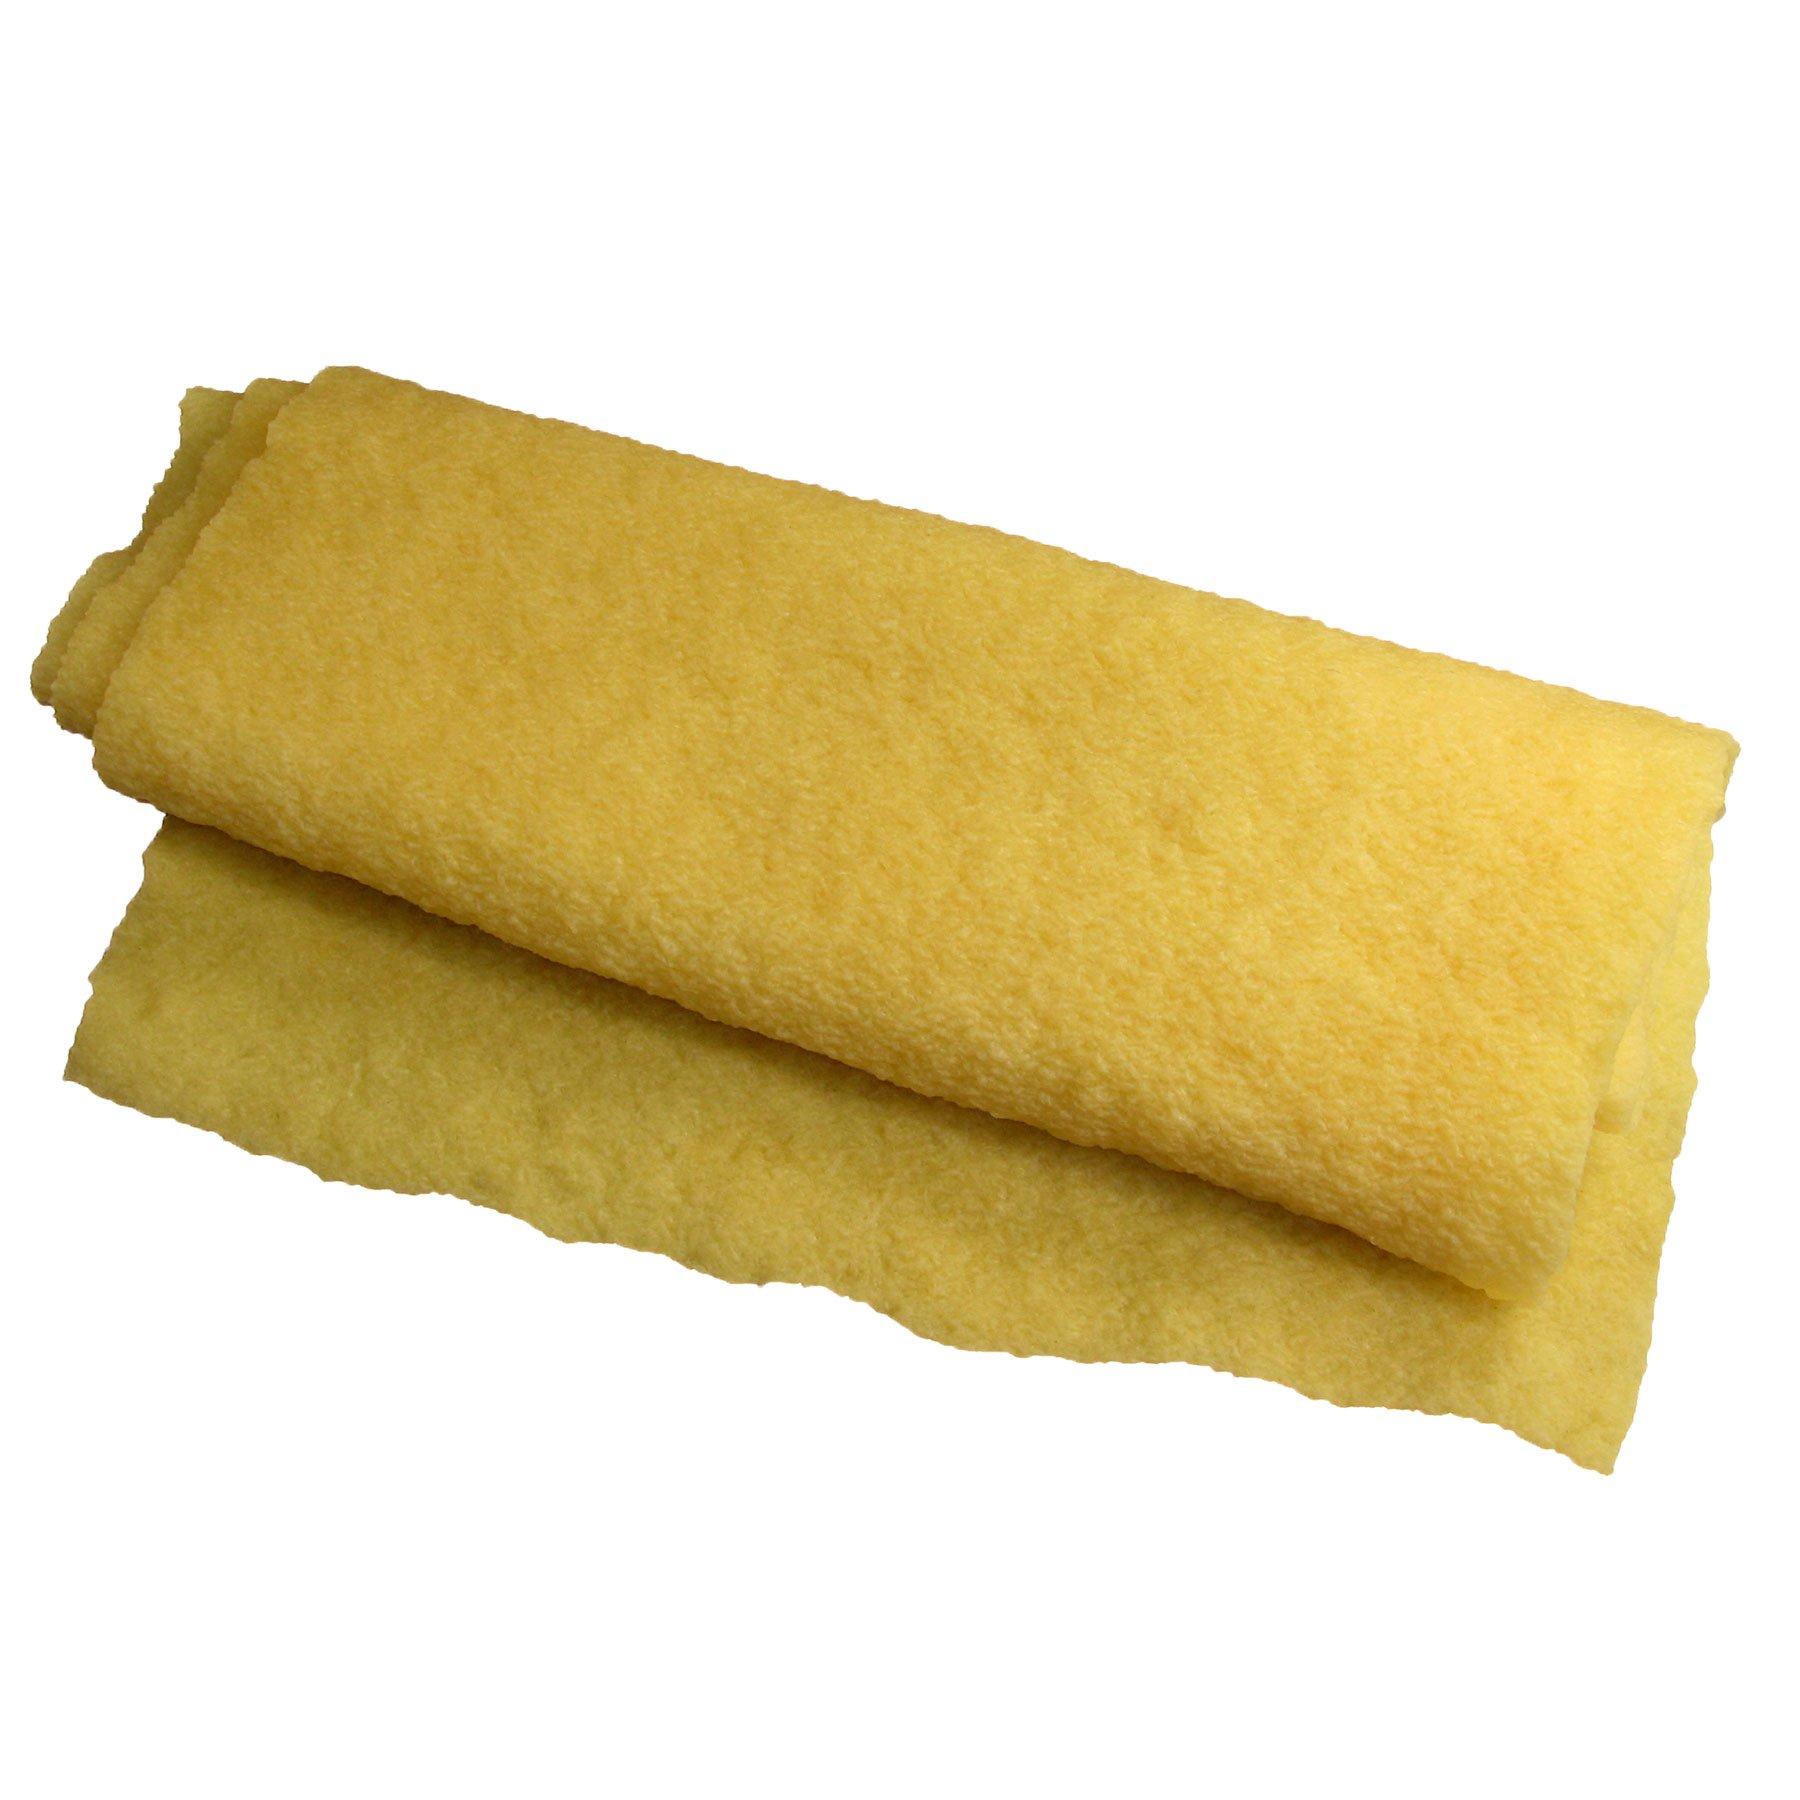 "1/8"" (3.2mm) Crepe Rubber - 18"" x 20"" Sheets - Natural"